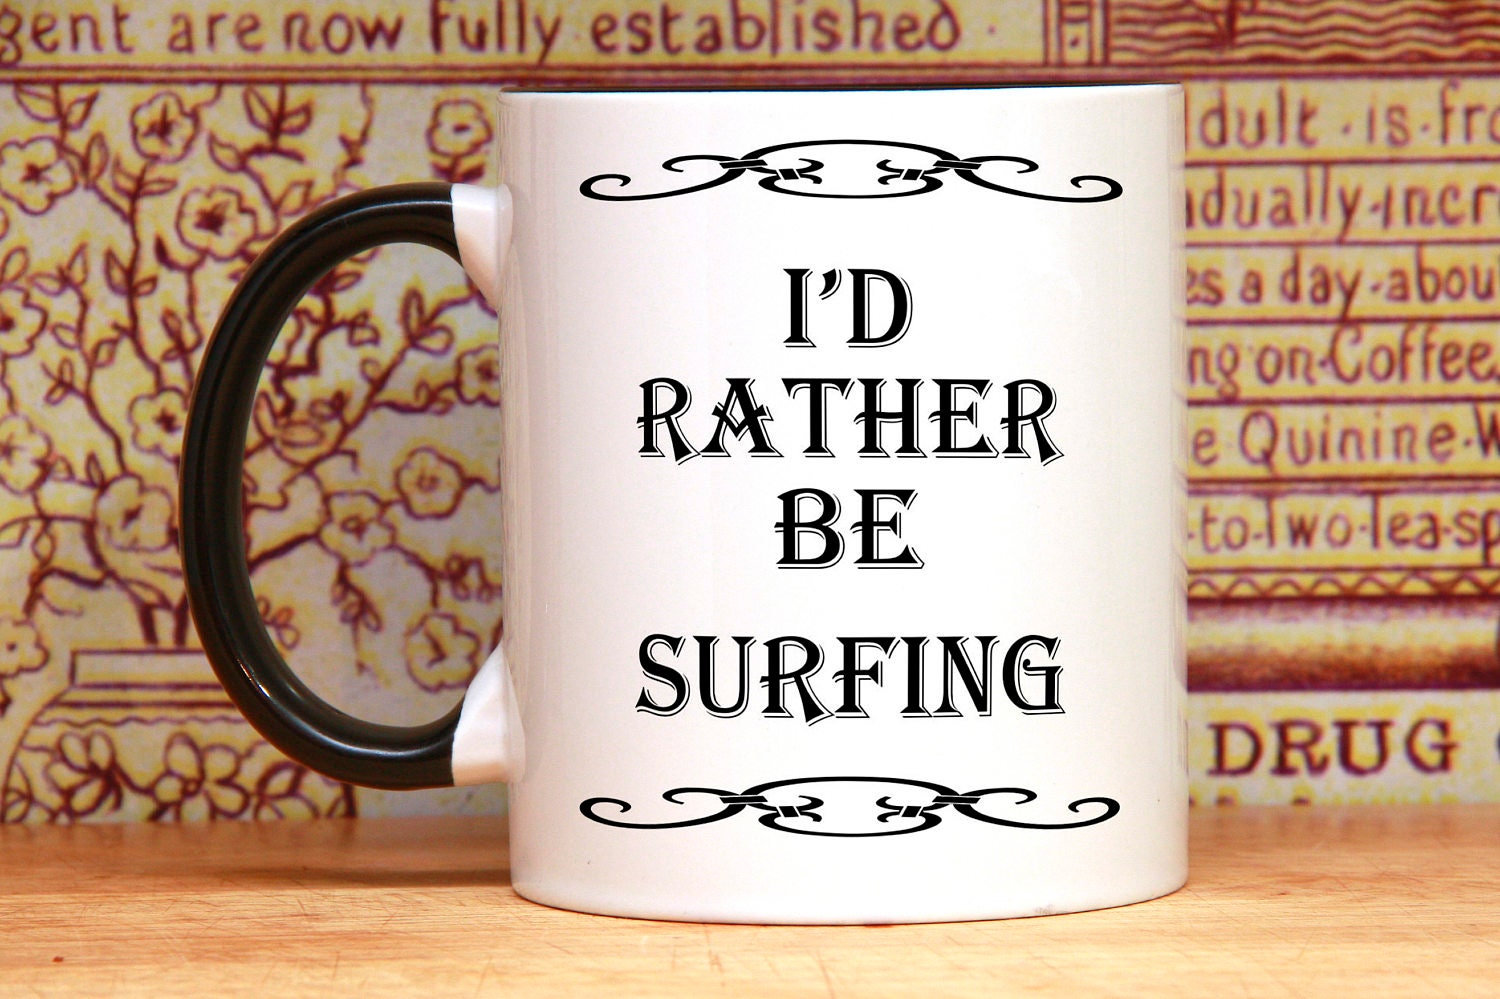 Surf coffee mug, mug for surfers, surfing coffee mugs, surfer coffee mugs,